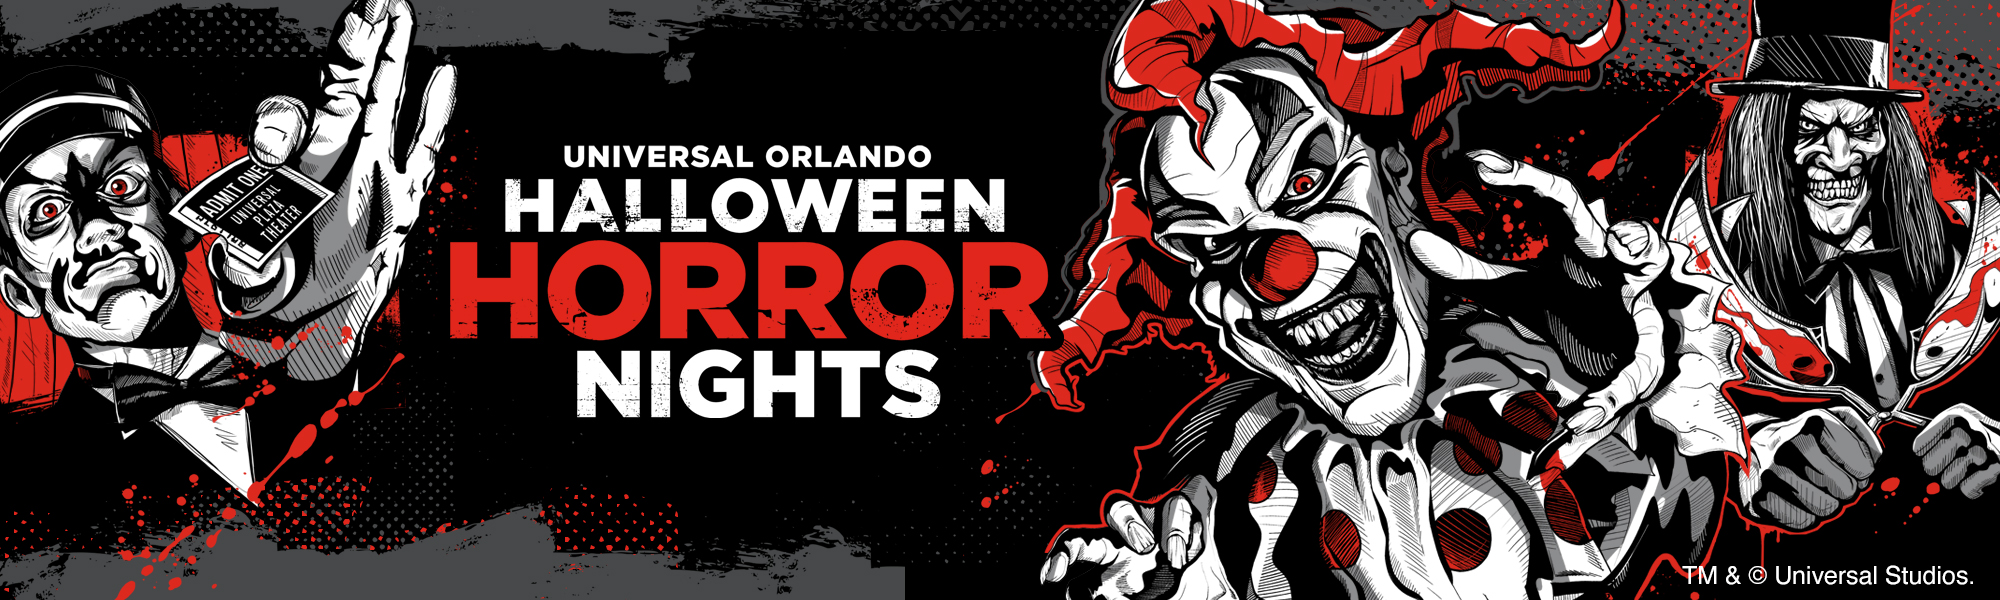 Shop Halloween Horror Nights Merchandise